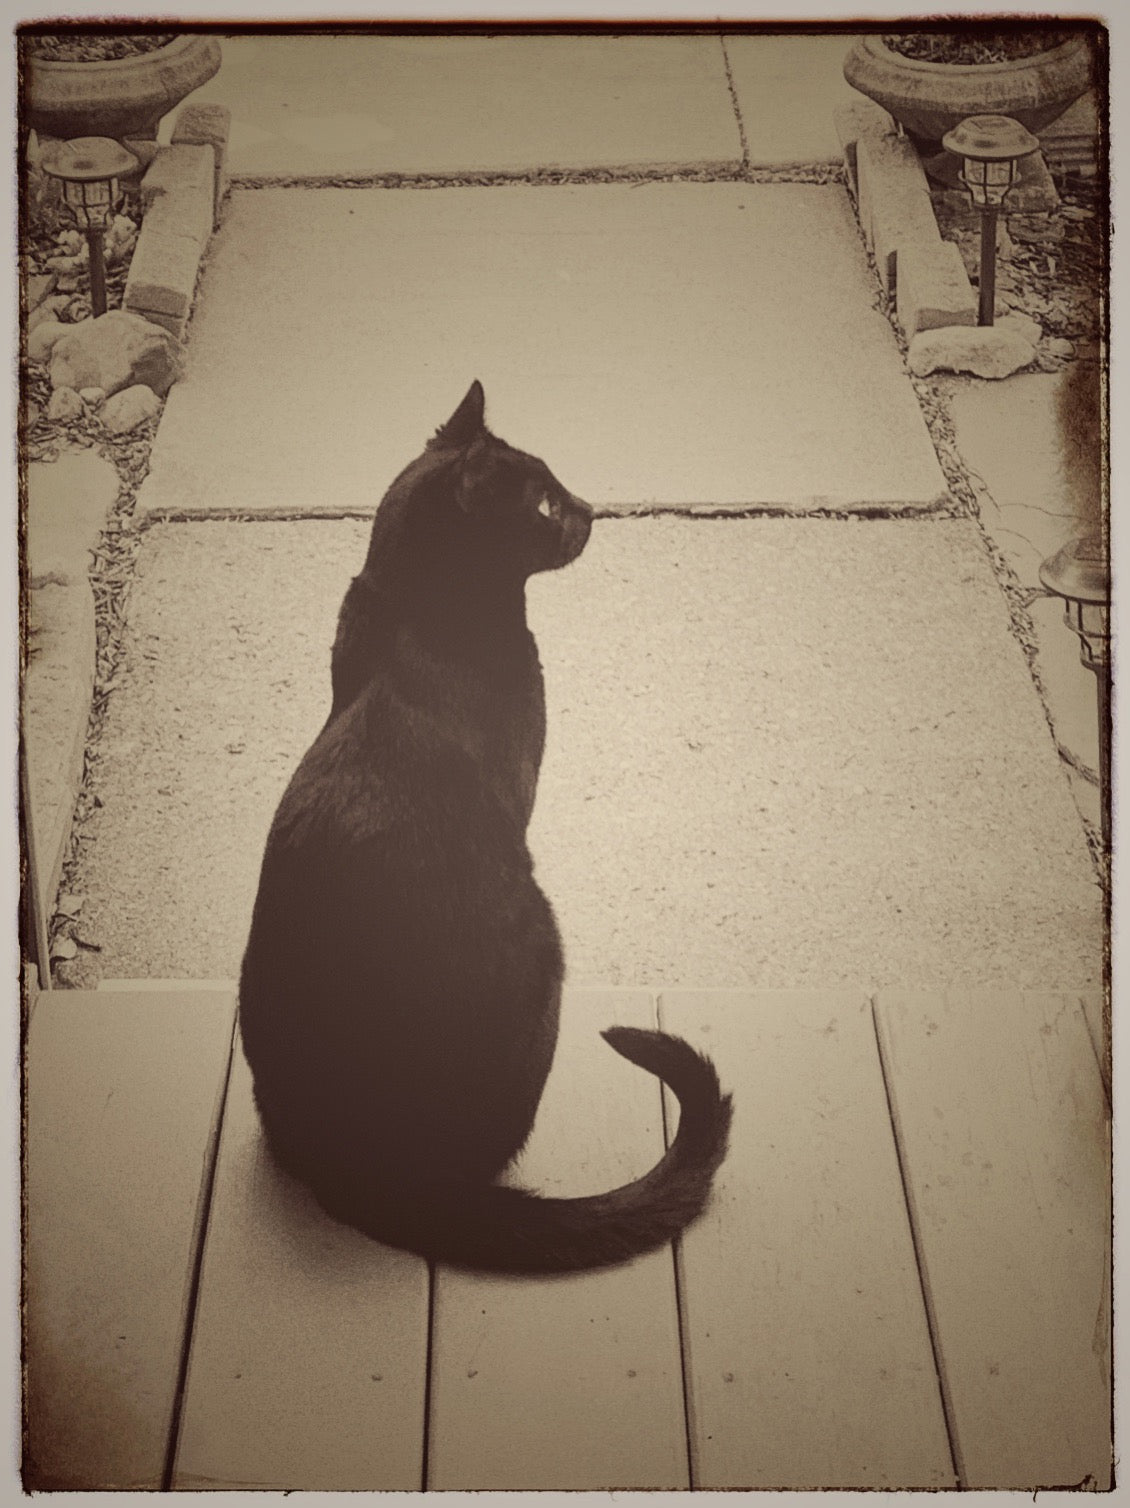 Today we had a beautiful black cat as a visitor on our porch.